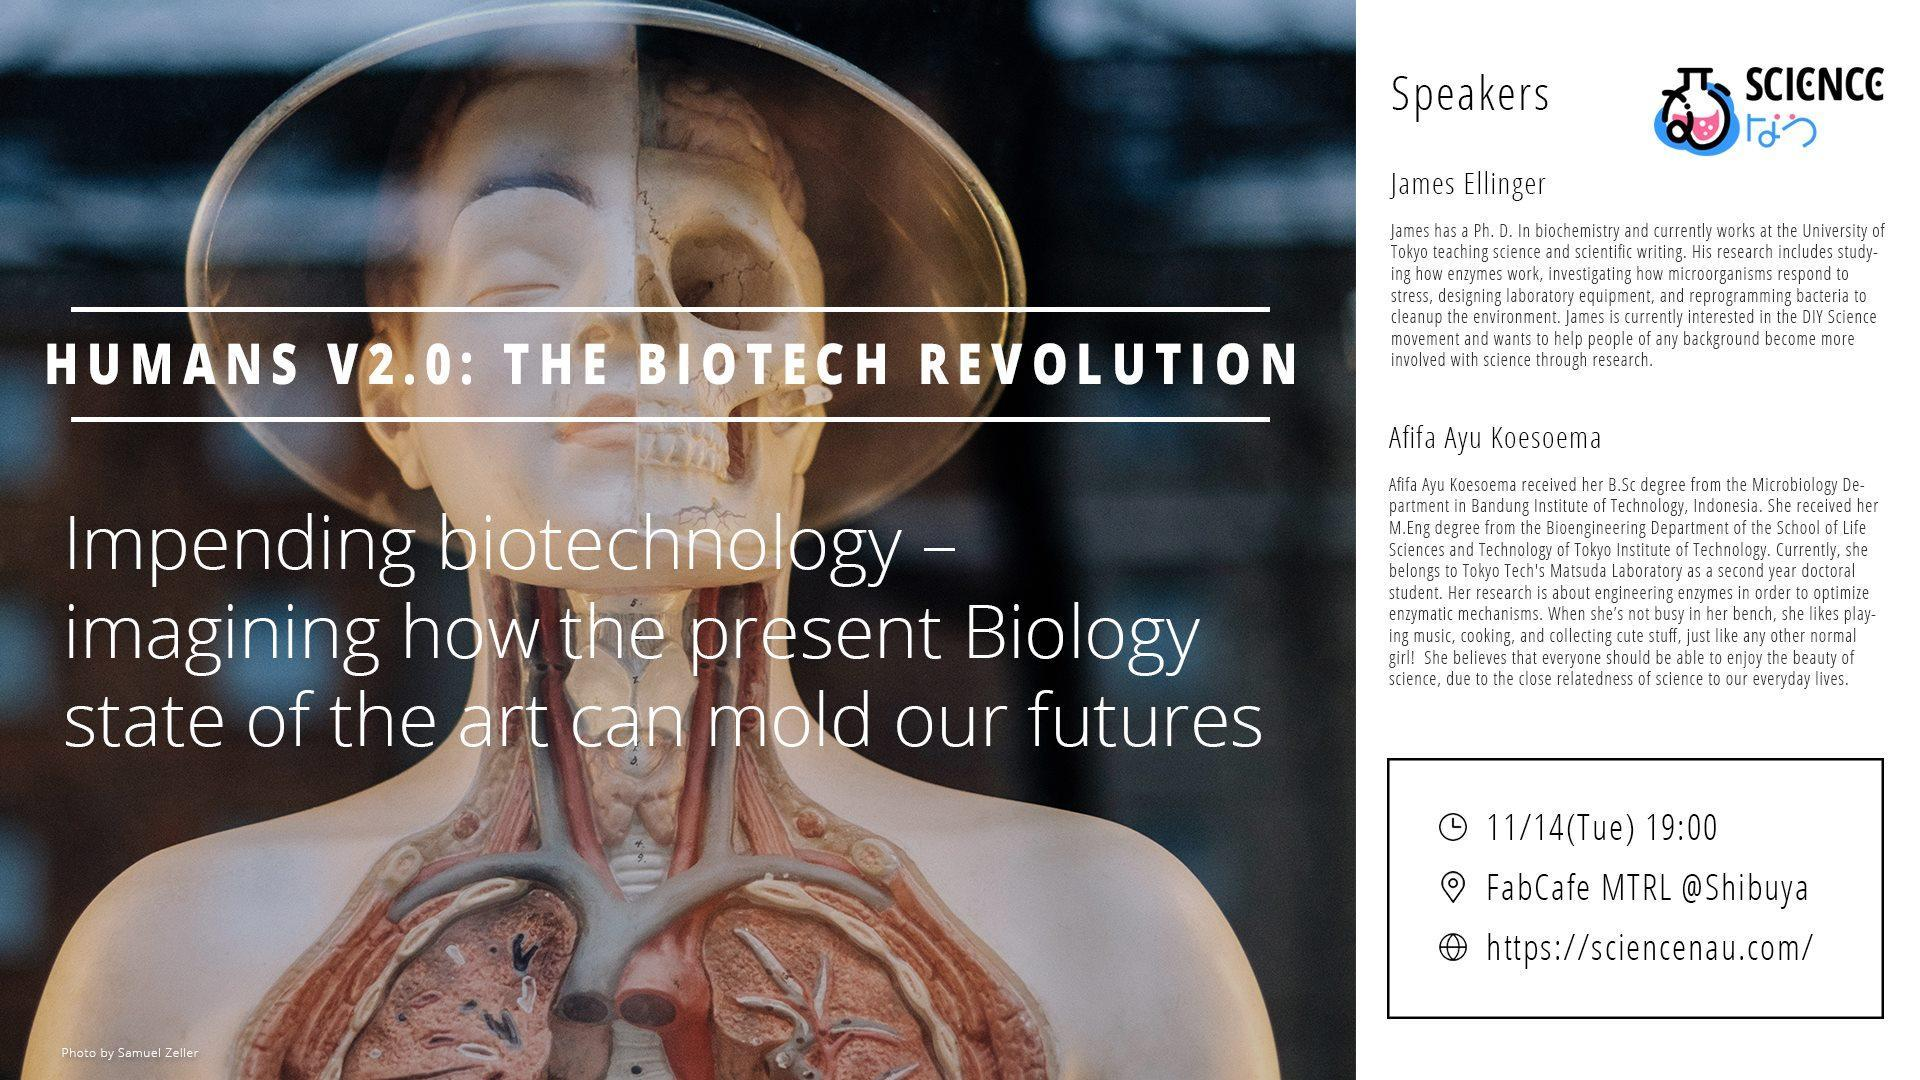 BioClub Weekly: Humans V2.0: the Biotech Revolution